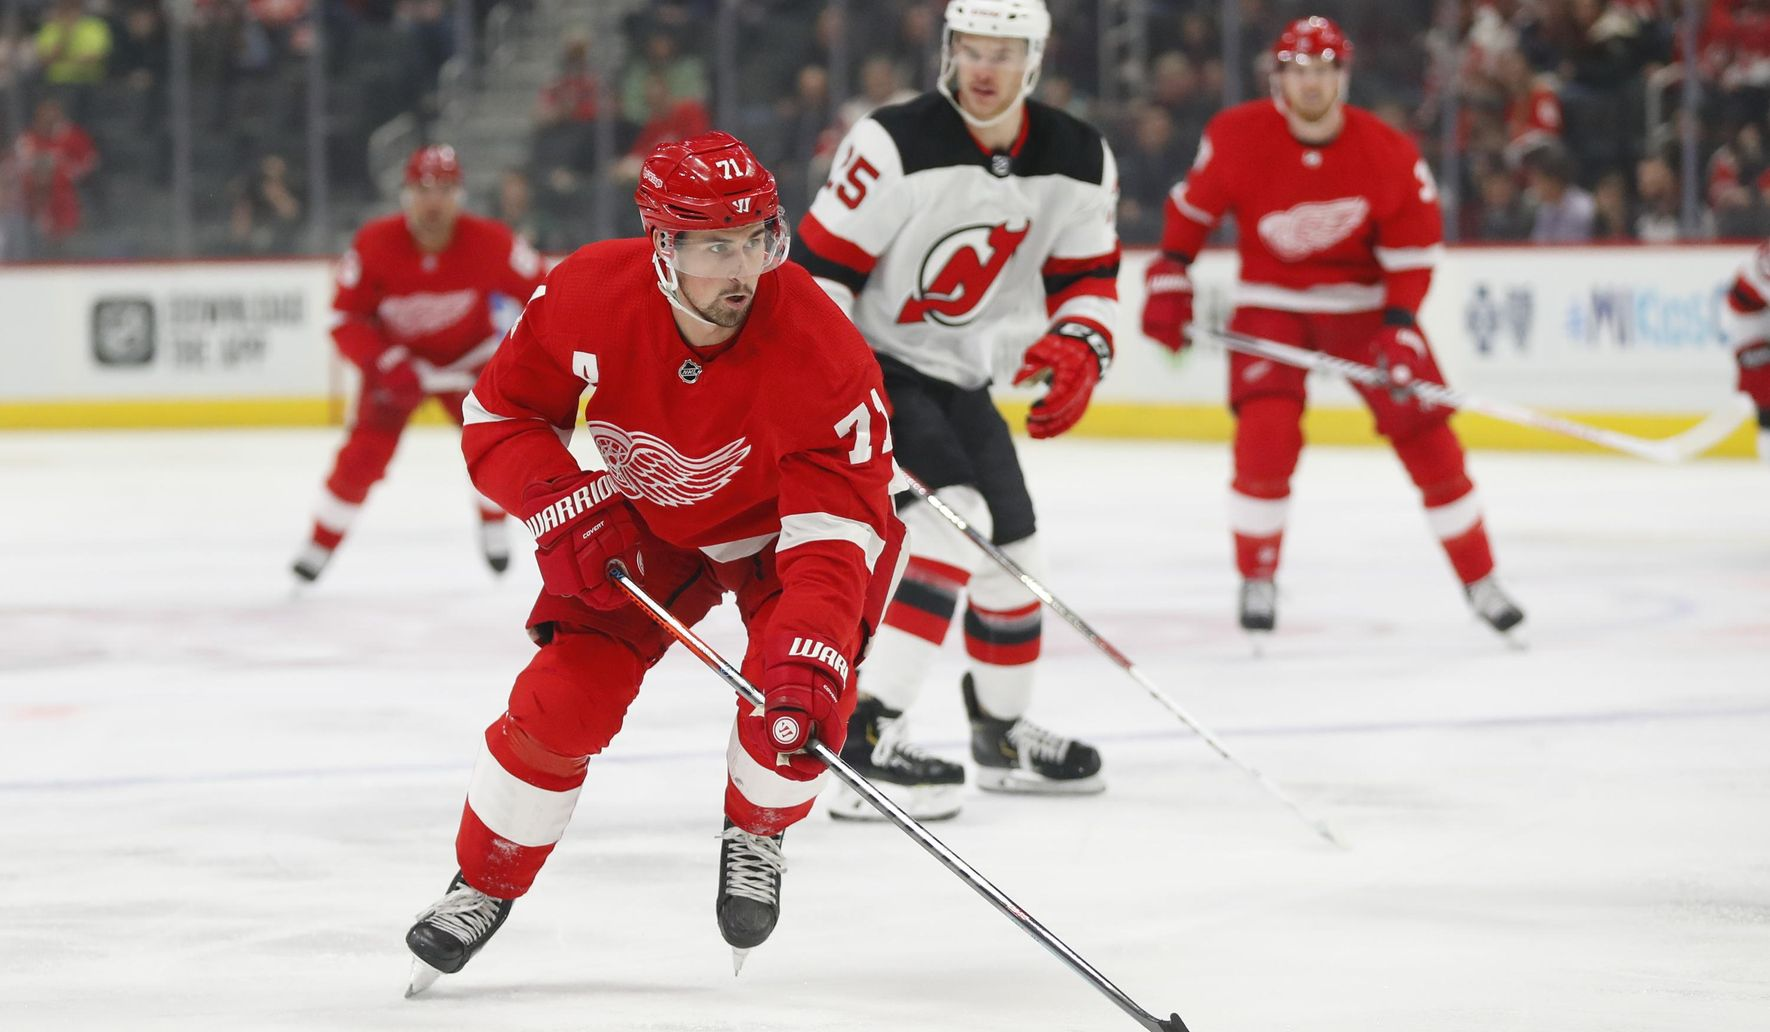 Red_wings_preview_hockey_09327_c0-125-3000-1874_s1770x1032